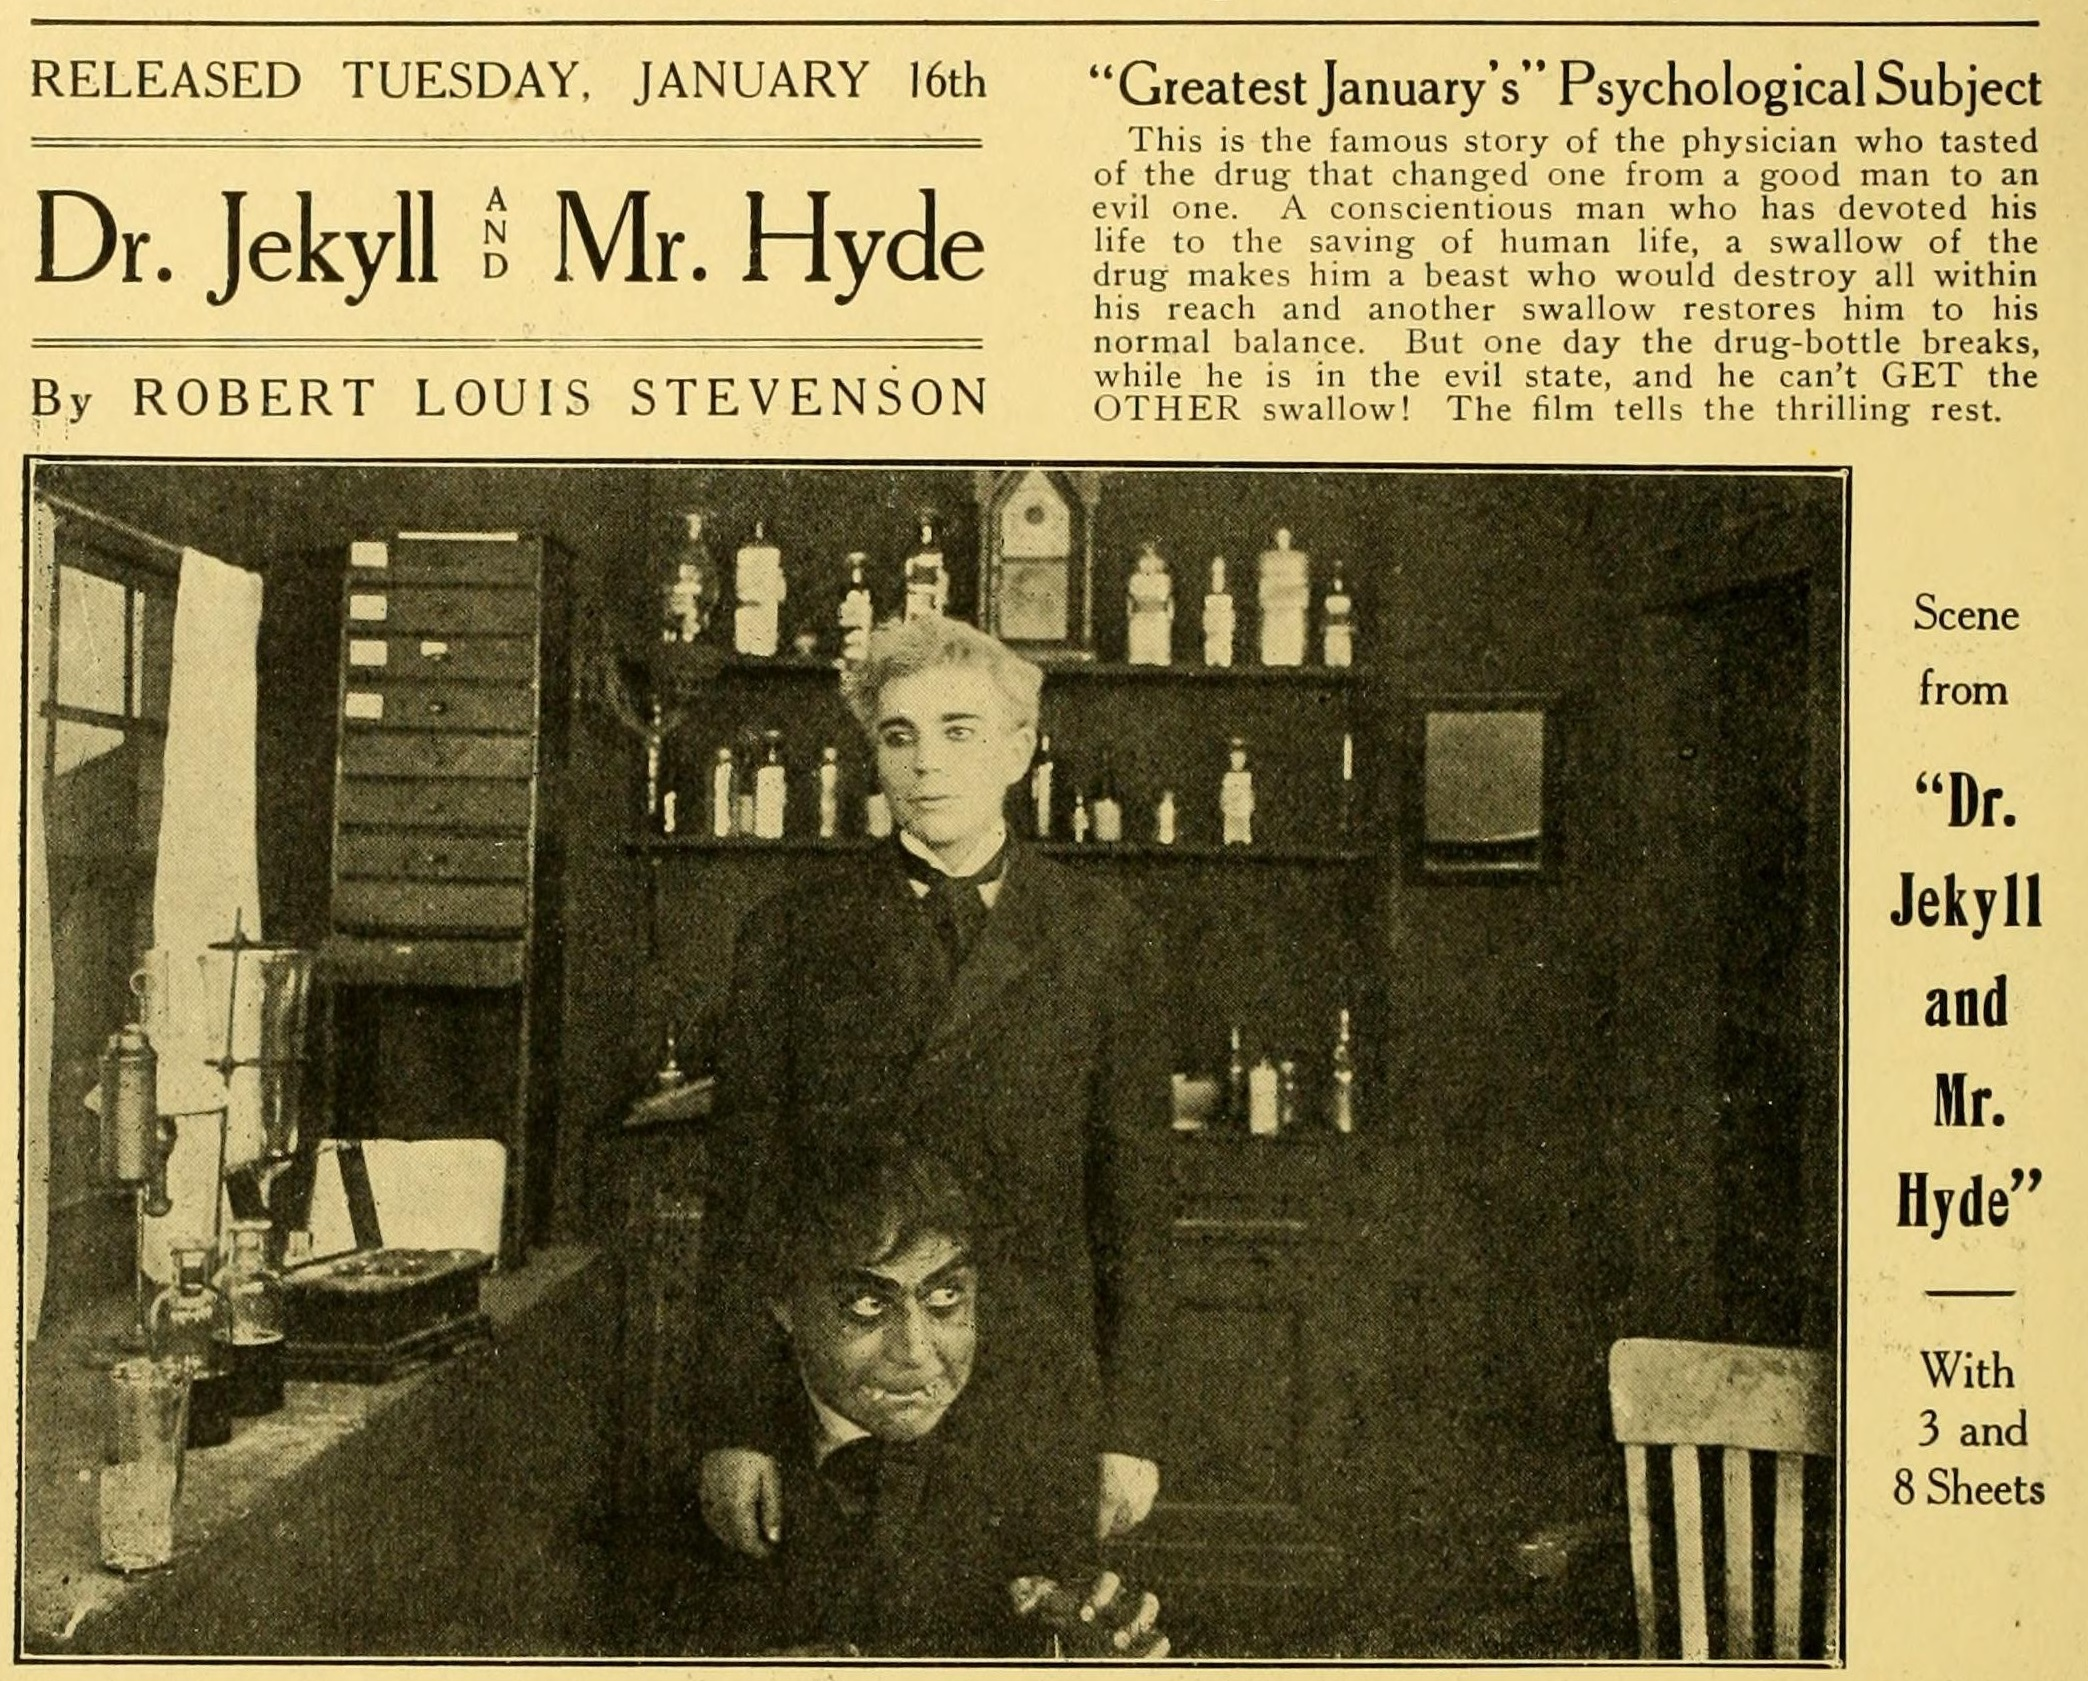 an analysis of dr jekyll and mr hyde a novel by robert louis stevenson Free essay: analysis of the strange case of dr jekyll and mr hyde by robert louis stevenson in an attempt to consider the duality tale, one narrative.